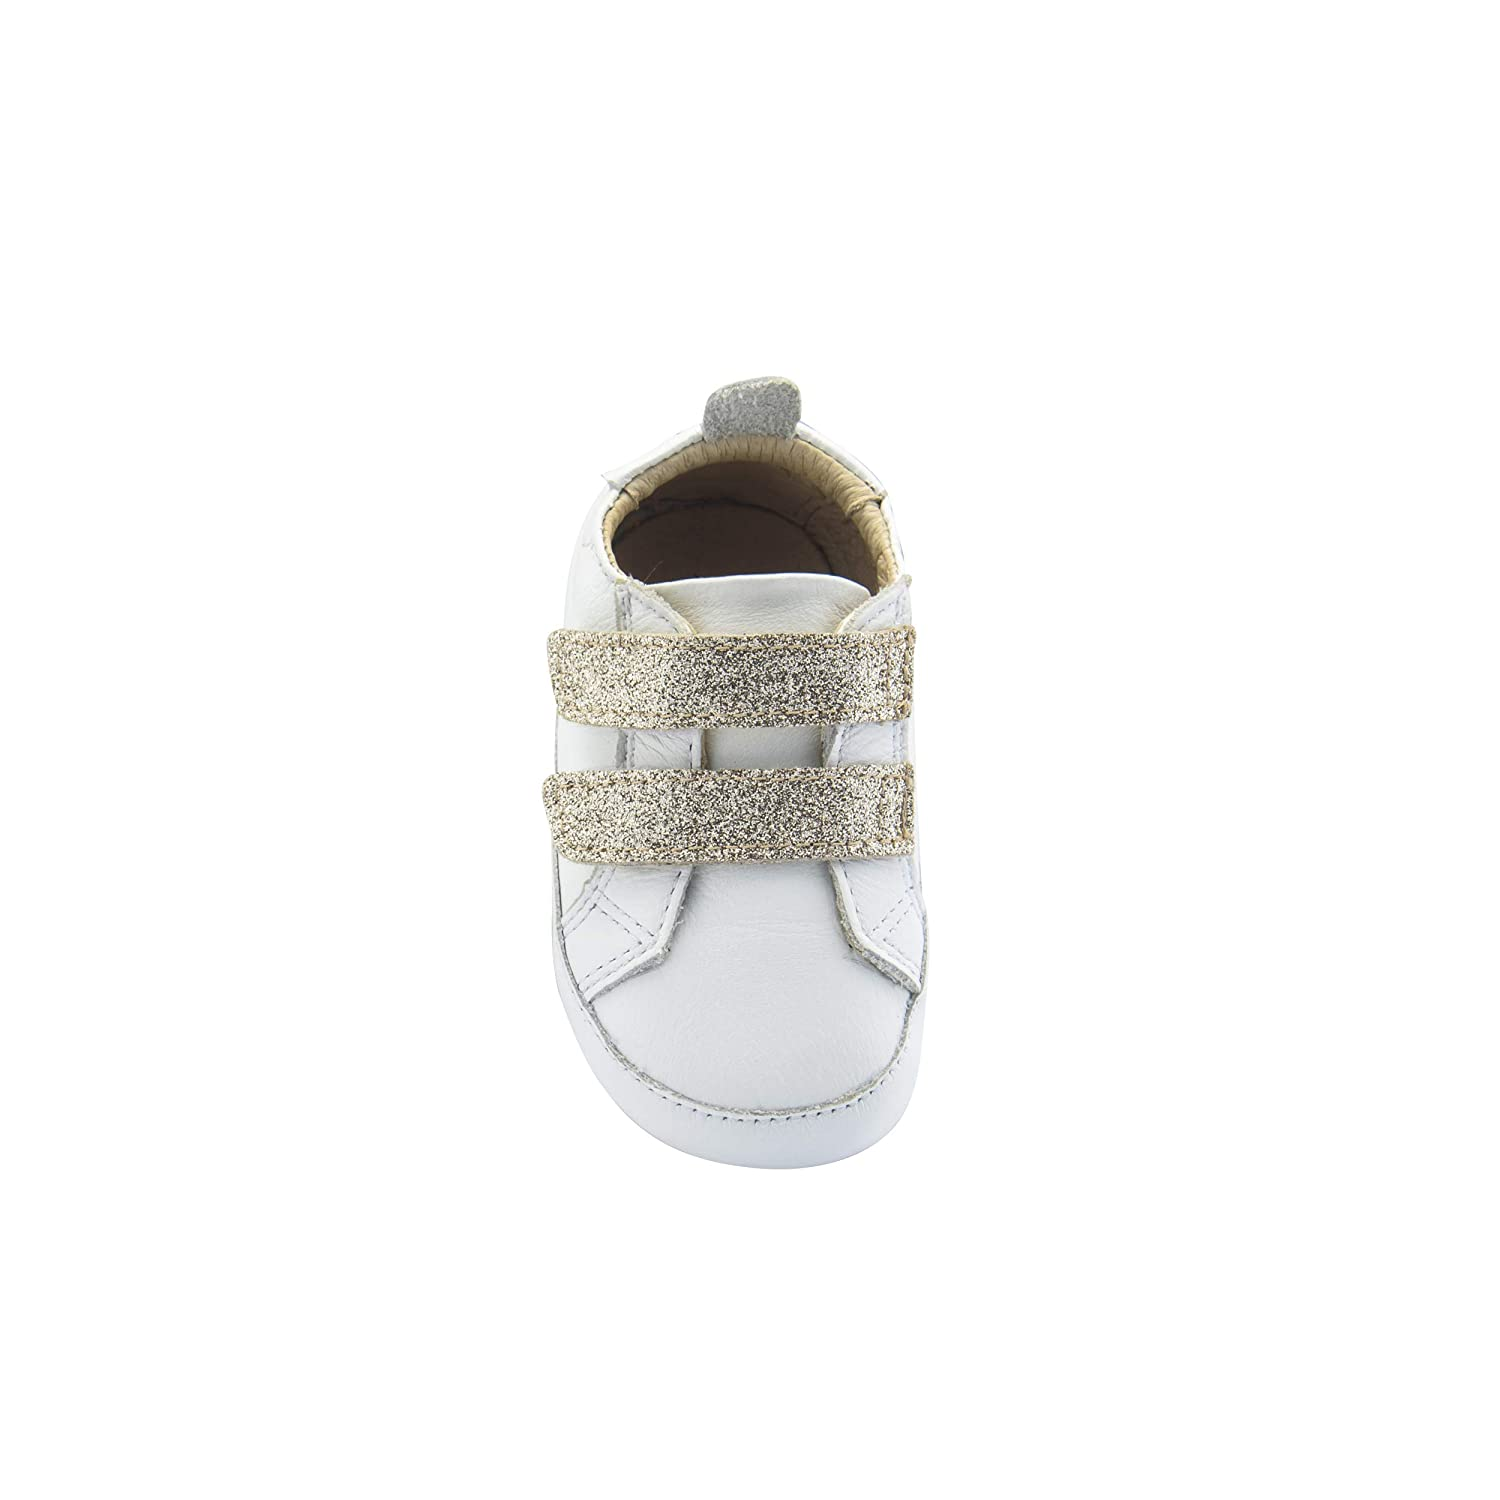 Infant//Toddler Snow//Glam Cream Old Soles Baby Girls//Boys Bambini Glam